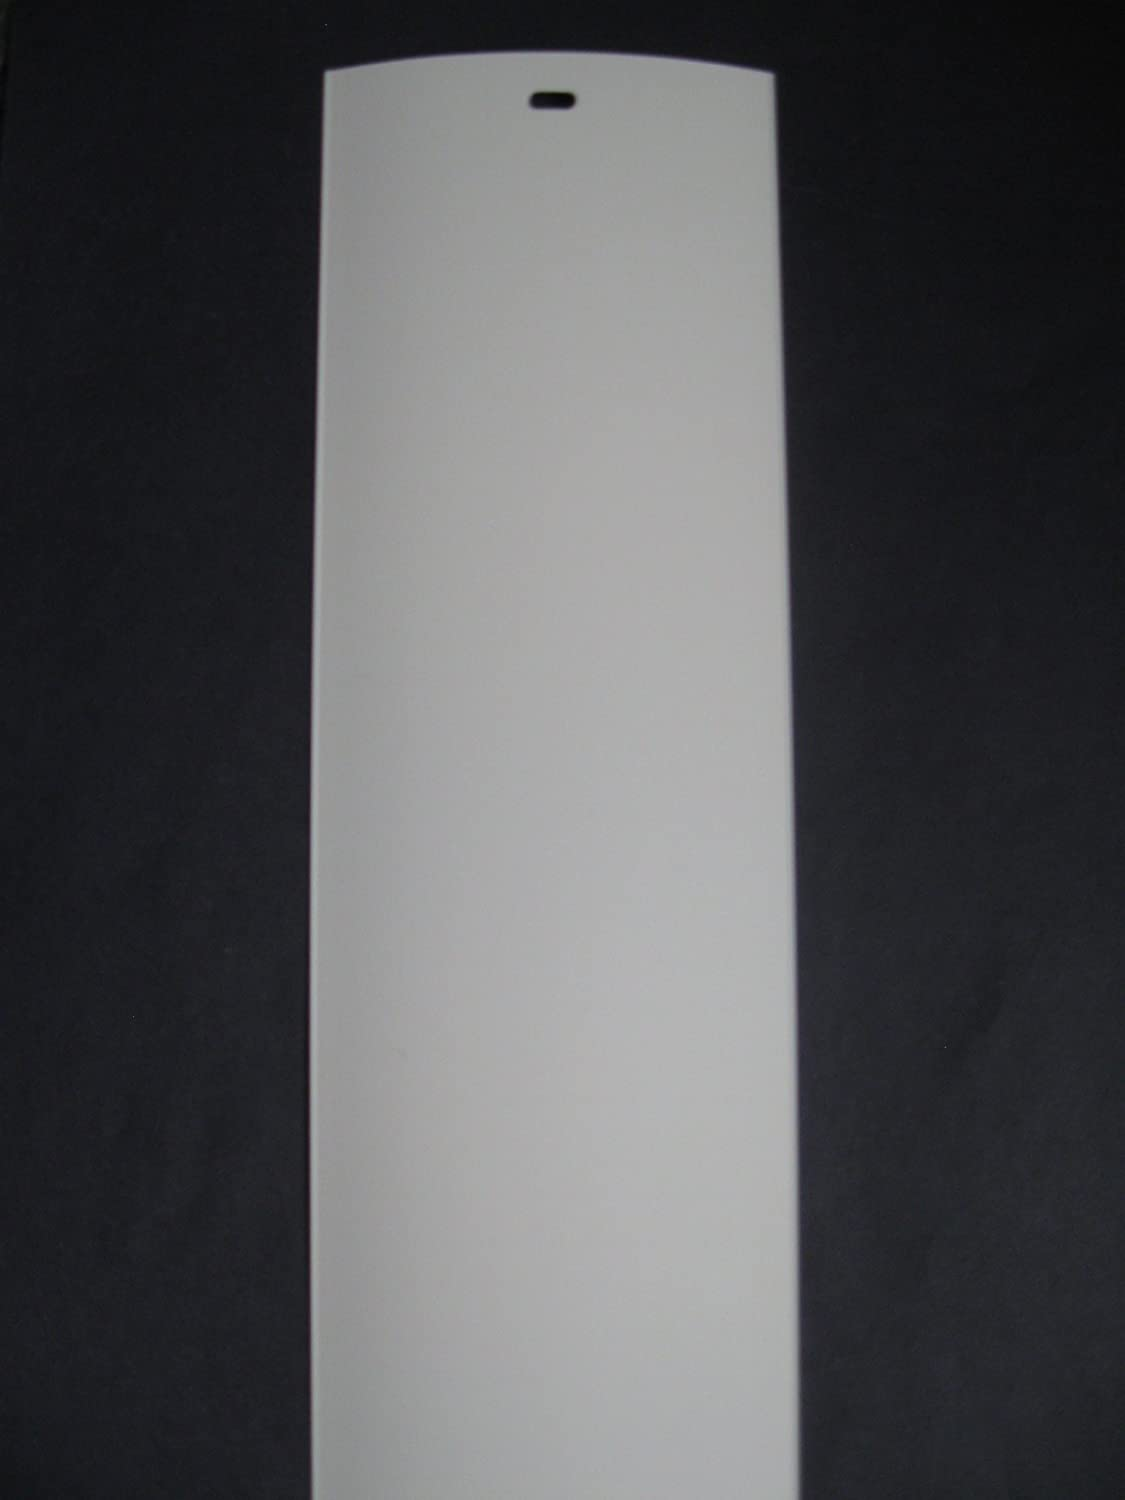 PVC Vertical Blind Replacement Slat (White) 20 Pk 82 1/2 X 3 1/2 Royal Window Coverings